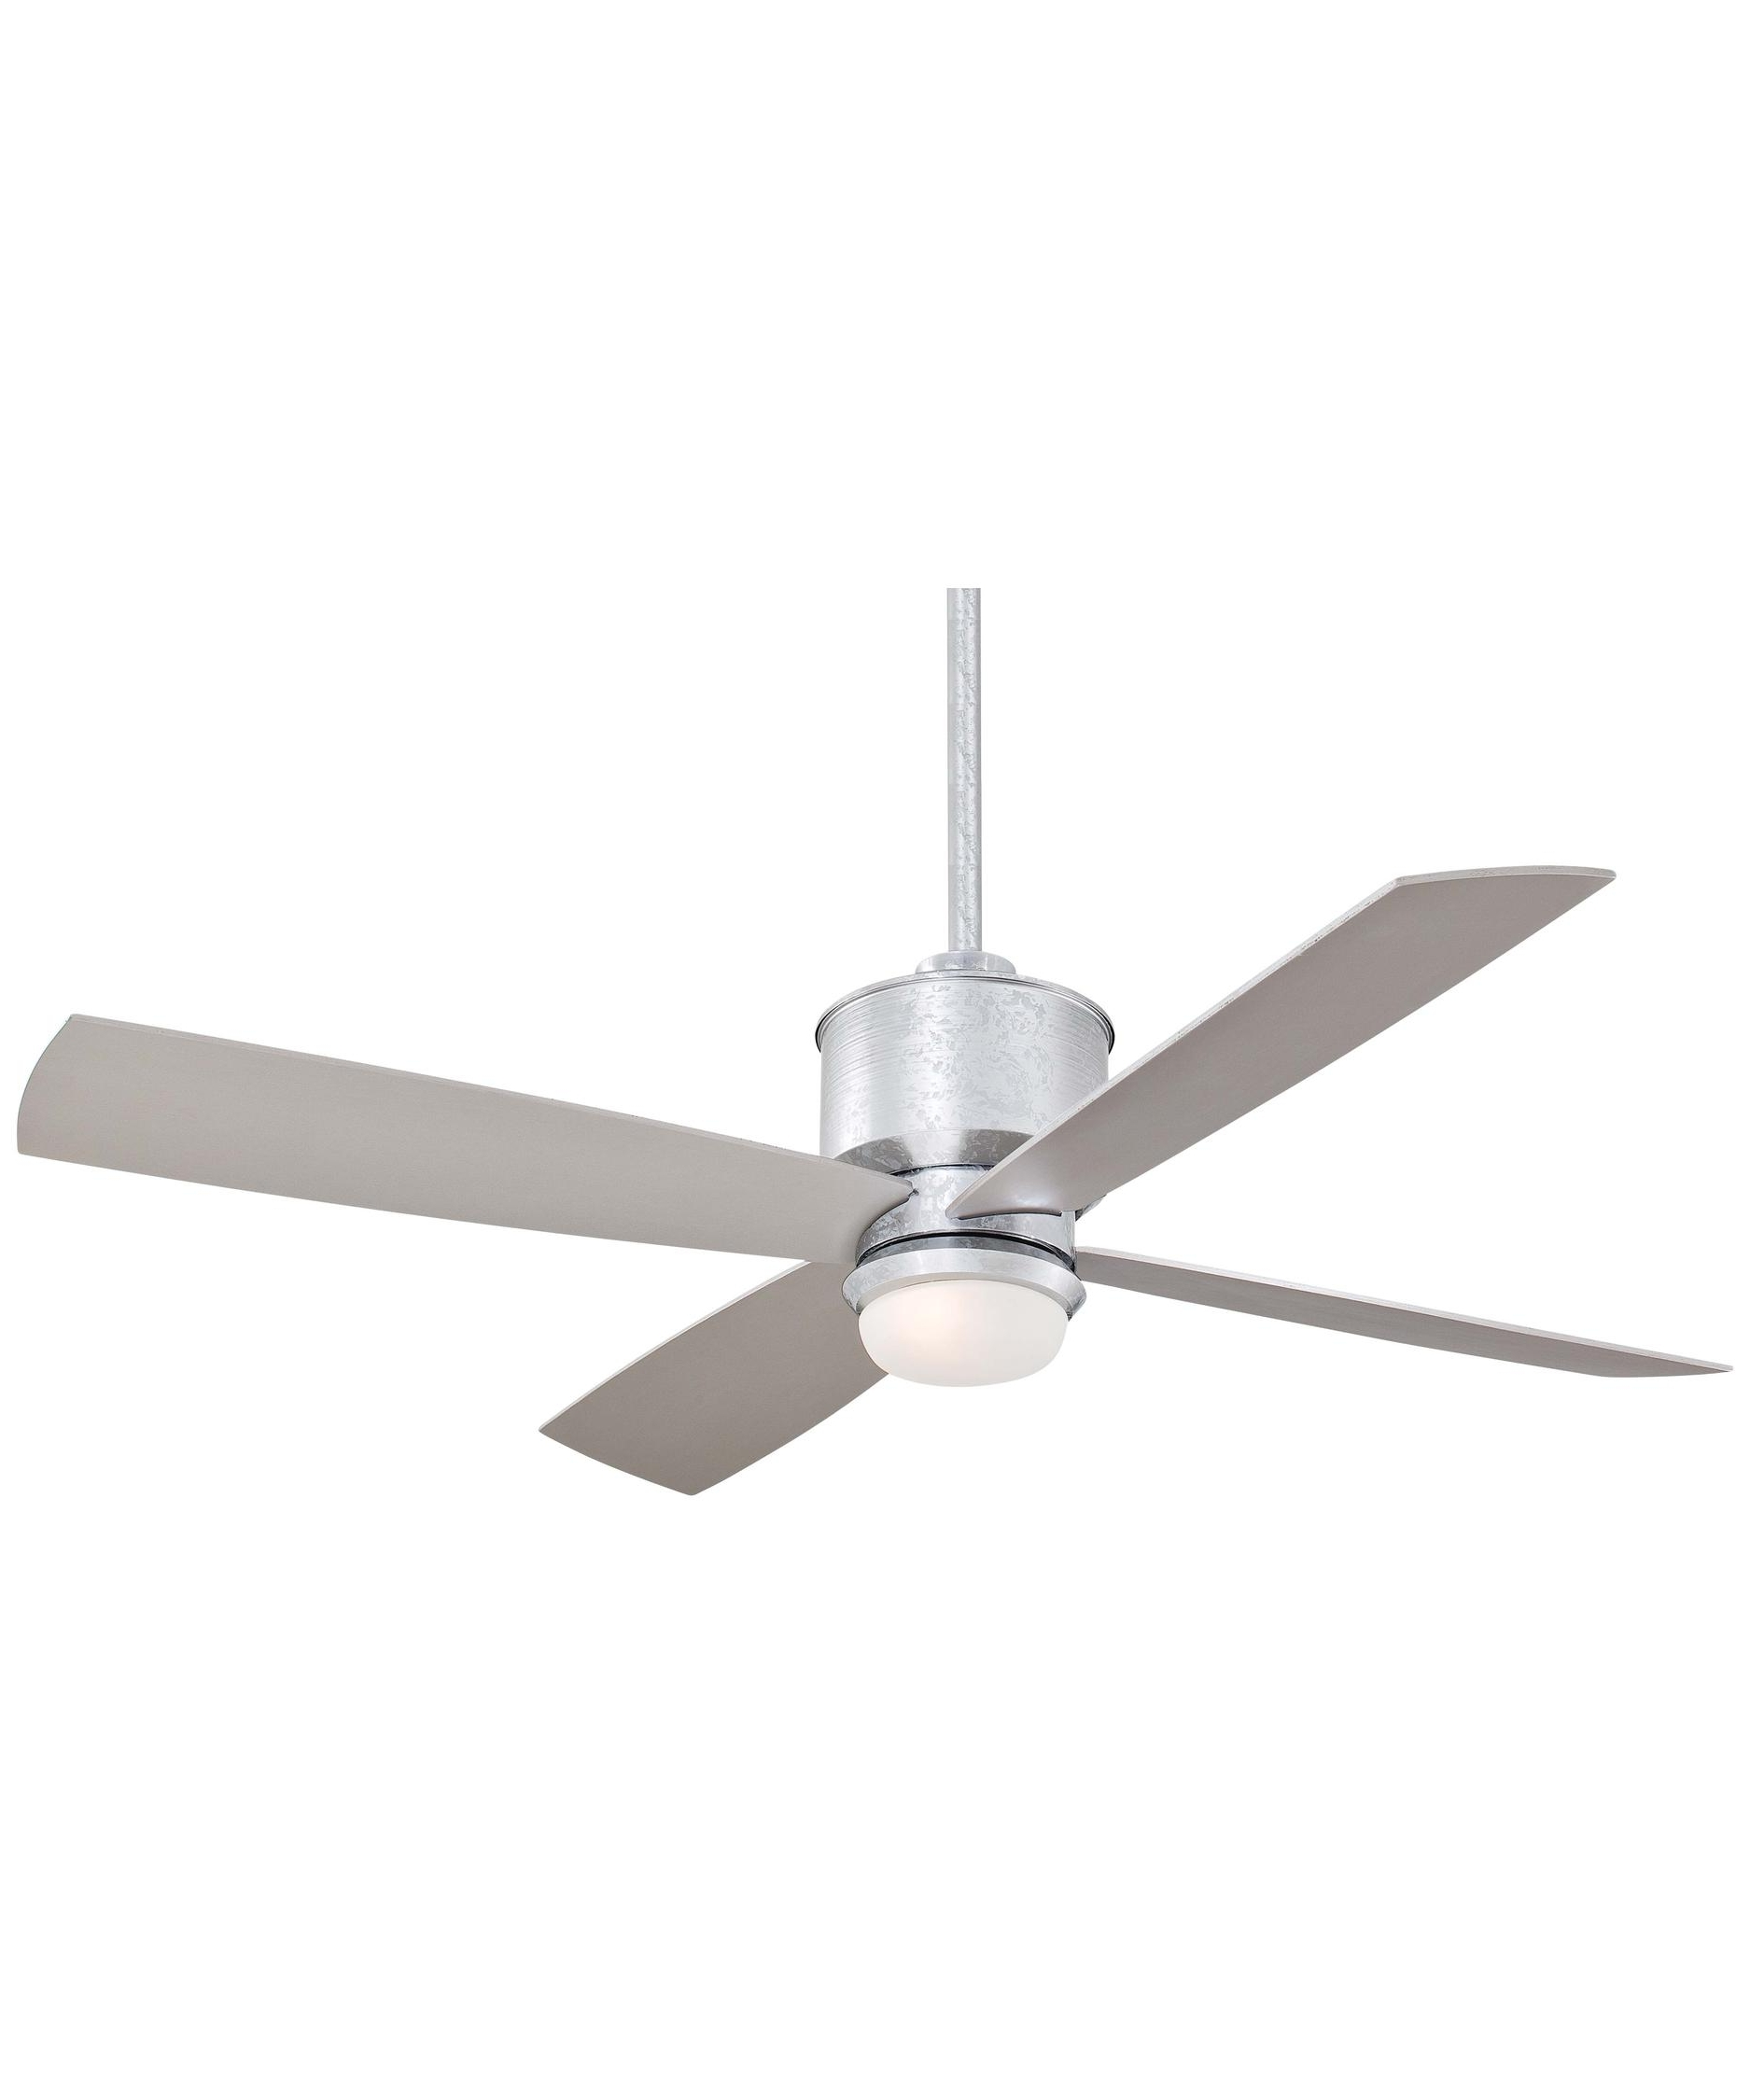 Most Recently Released Galvanized Outdoor Ceiling Fans With Light Inside Minka Aire F734 Strata 52 Inch 4 Blade Ceiling Fan (View 6 of 20)